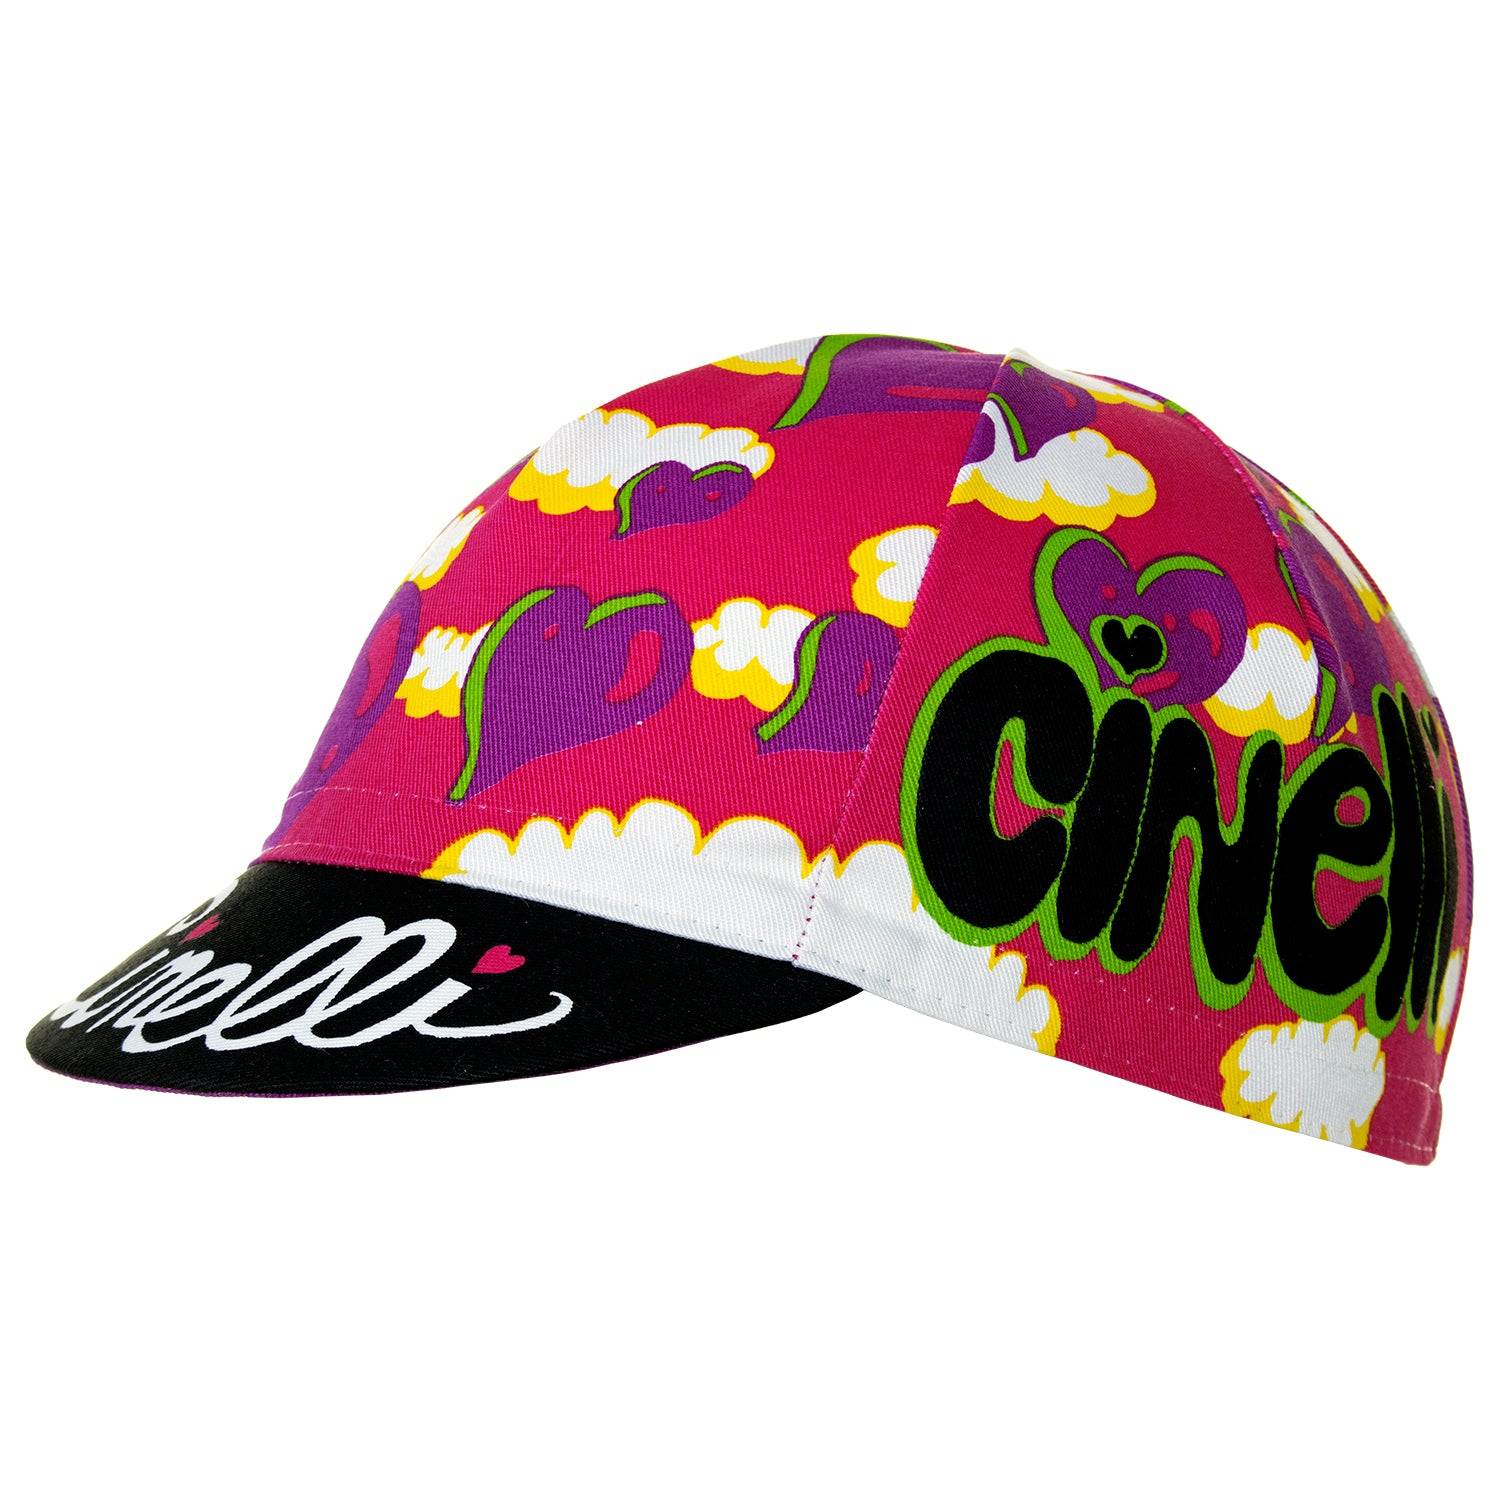 Cinelli Ana Benaroya Heart Cotton Cycling Cap